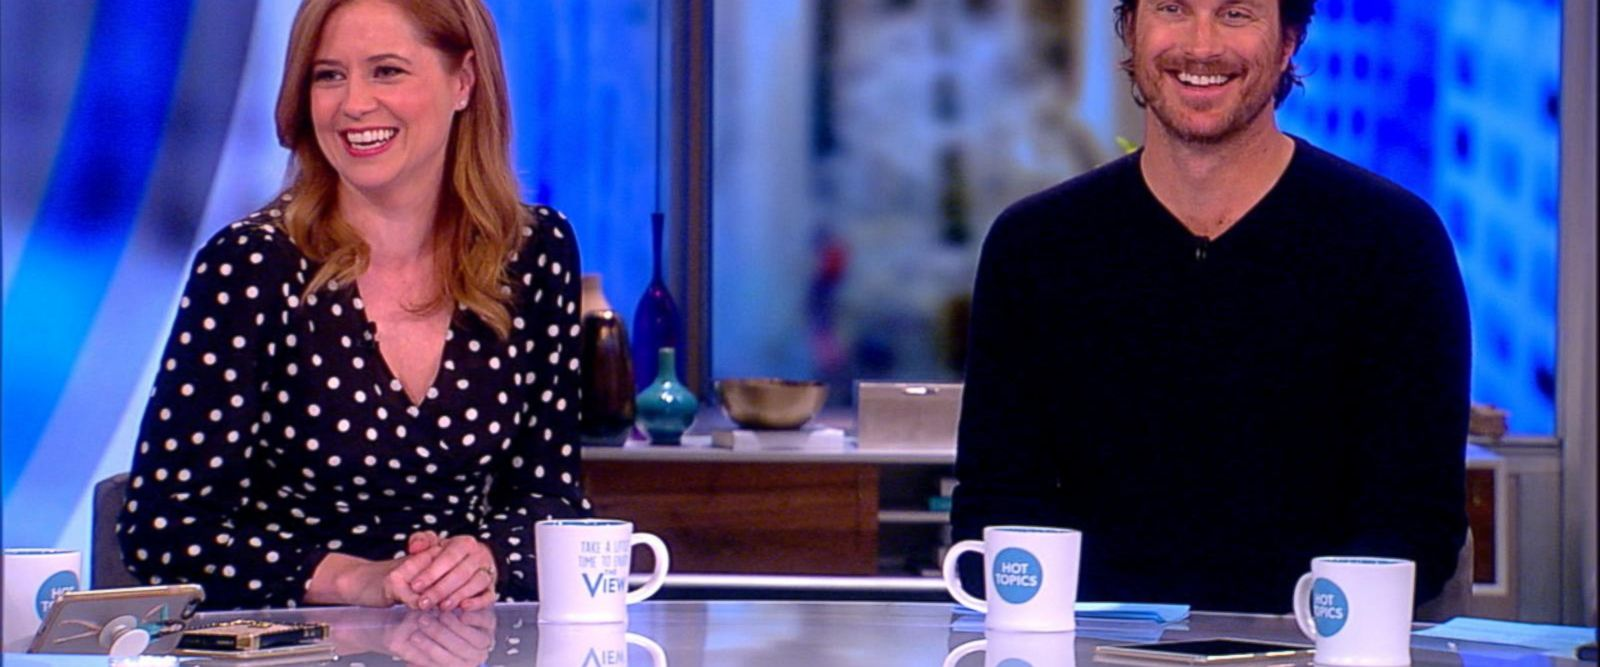 VIDEO: Jenna Fischer, Oliver Hudson talk 'Splitting Up Together'